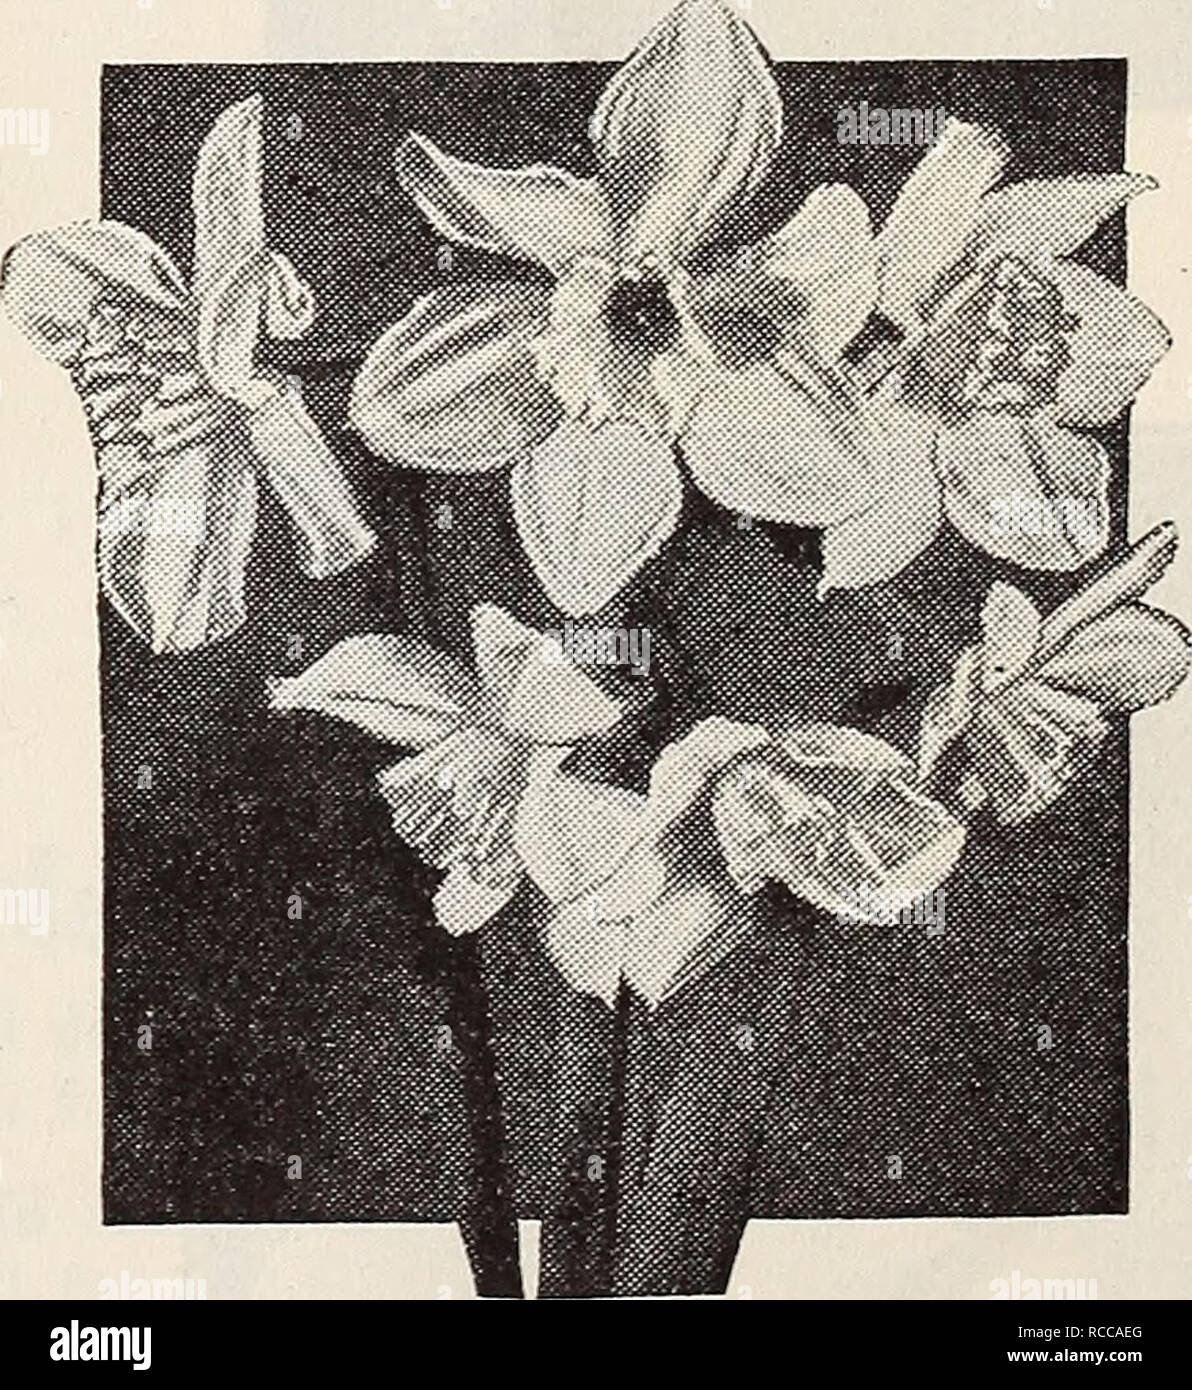 . Dreer quality seeds plants bulbs. Flowers Catalogs; Plants, Ornamental Catalogs; Bulbs (Plants) Catalogs; Nurseries (Horticulture) Catalogs. 3 for 45c Cheerfulness. Stella Polaris. Please note that these images are extracted from scanned page images that may have been digitally enhanced for readability - coloration and appearance of these illustrations may not perfectly resemble the original work.. Henry A. Dreer (Firm); Henry G. Gilbert Nursery and Seed Trade Catalog Collection. Philadelphia, Pa. : Henry A. Dreer - Stock Image